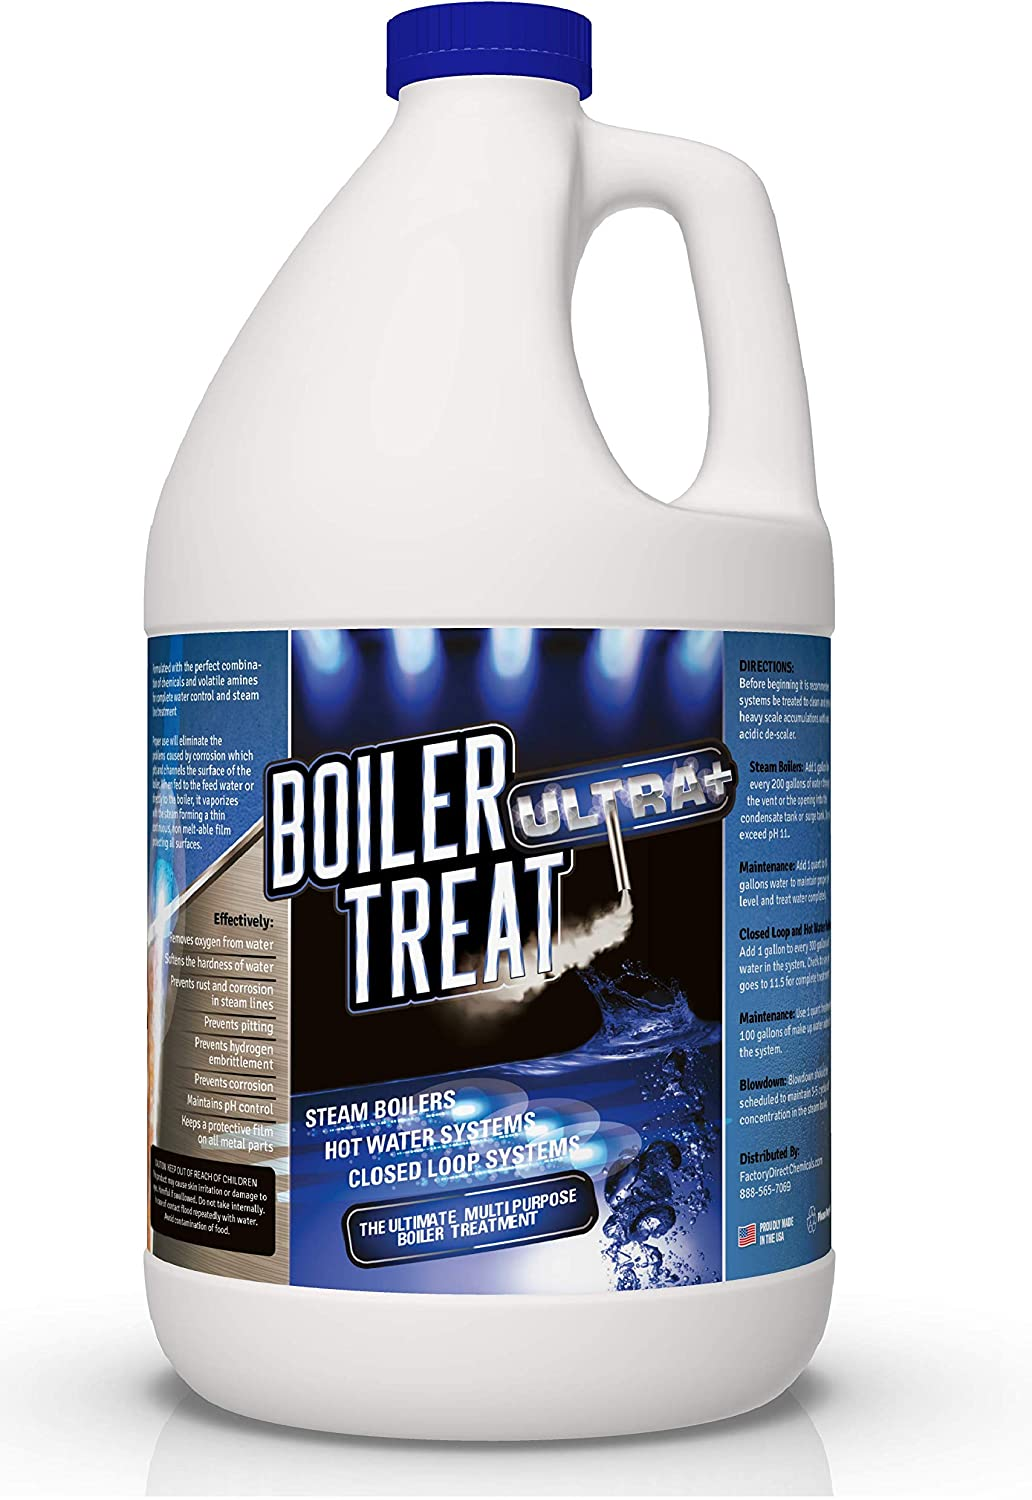 BOILER TREAT ULTRA Multi Purpose Boiler Water Treatment - 1 Gallon | Prevents Scale & Lime in Steam Boilers, Hot Water Systems, Closed Loop Systems & Wood Burning Boilers